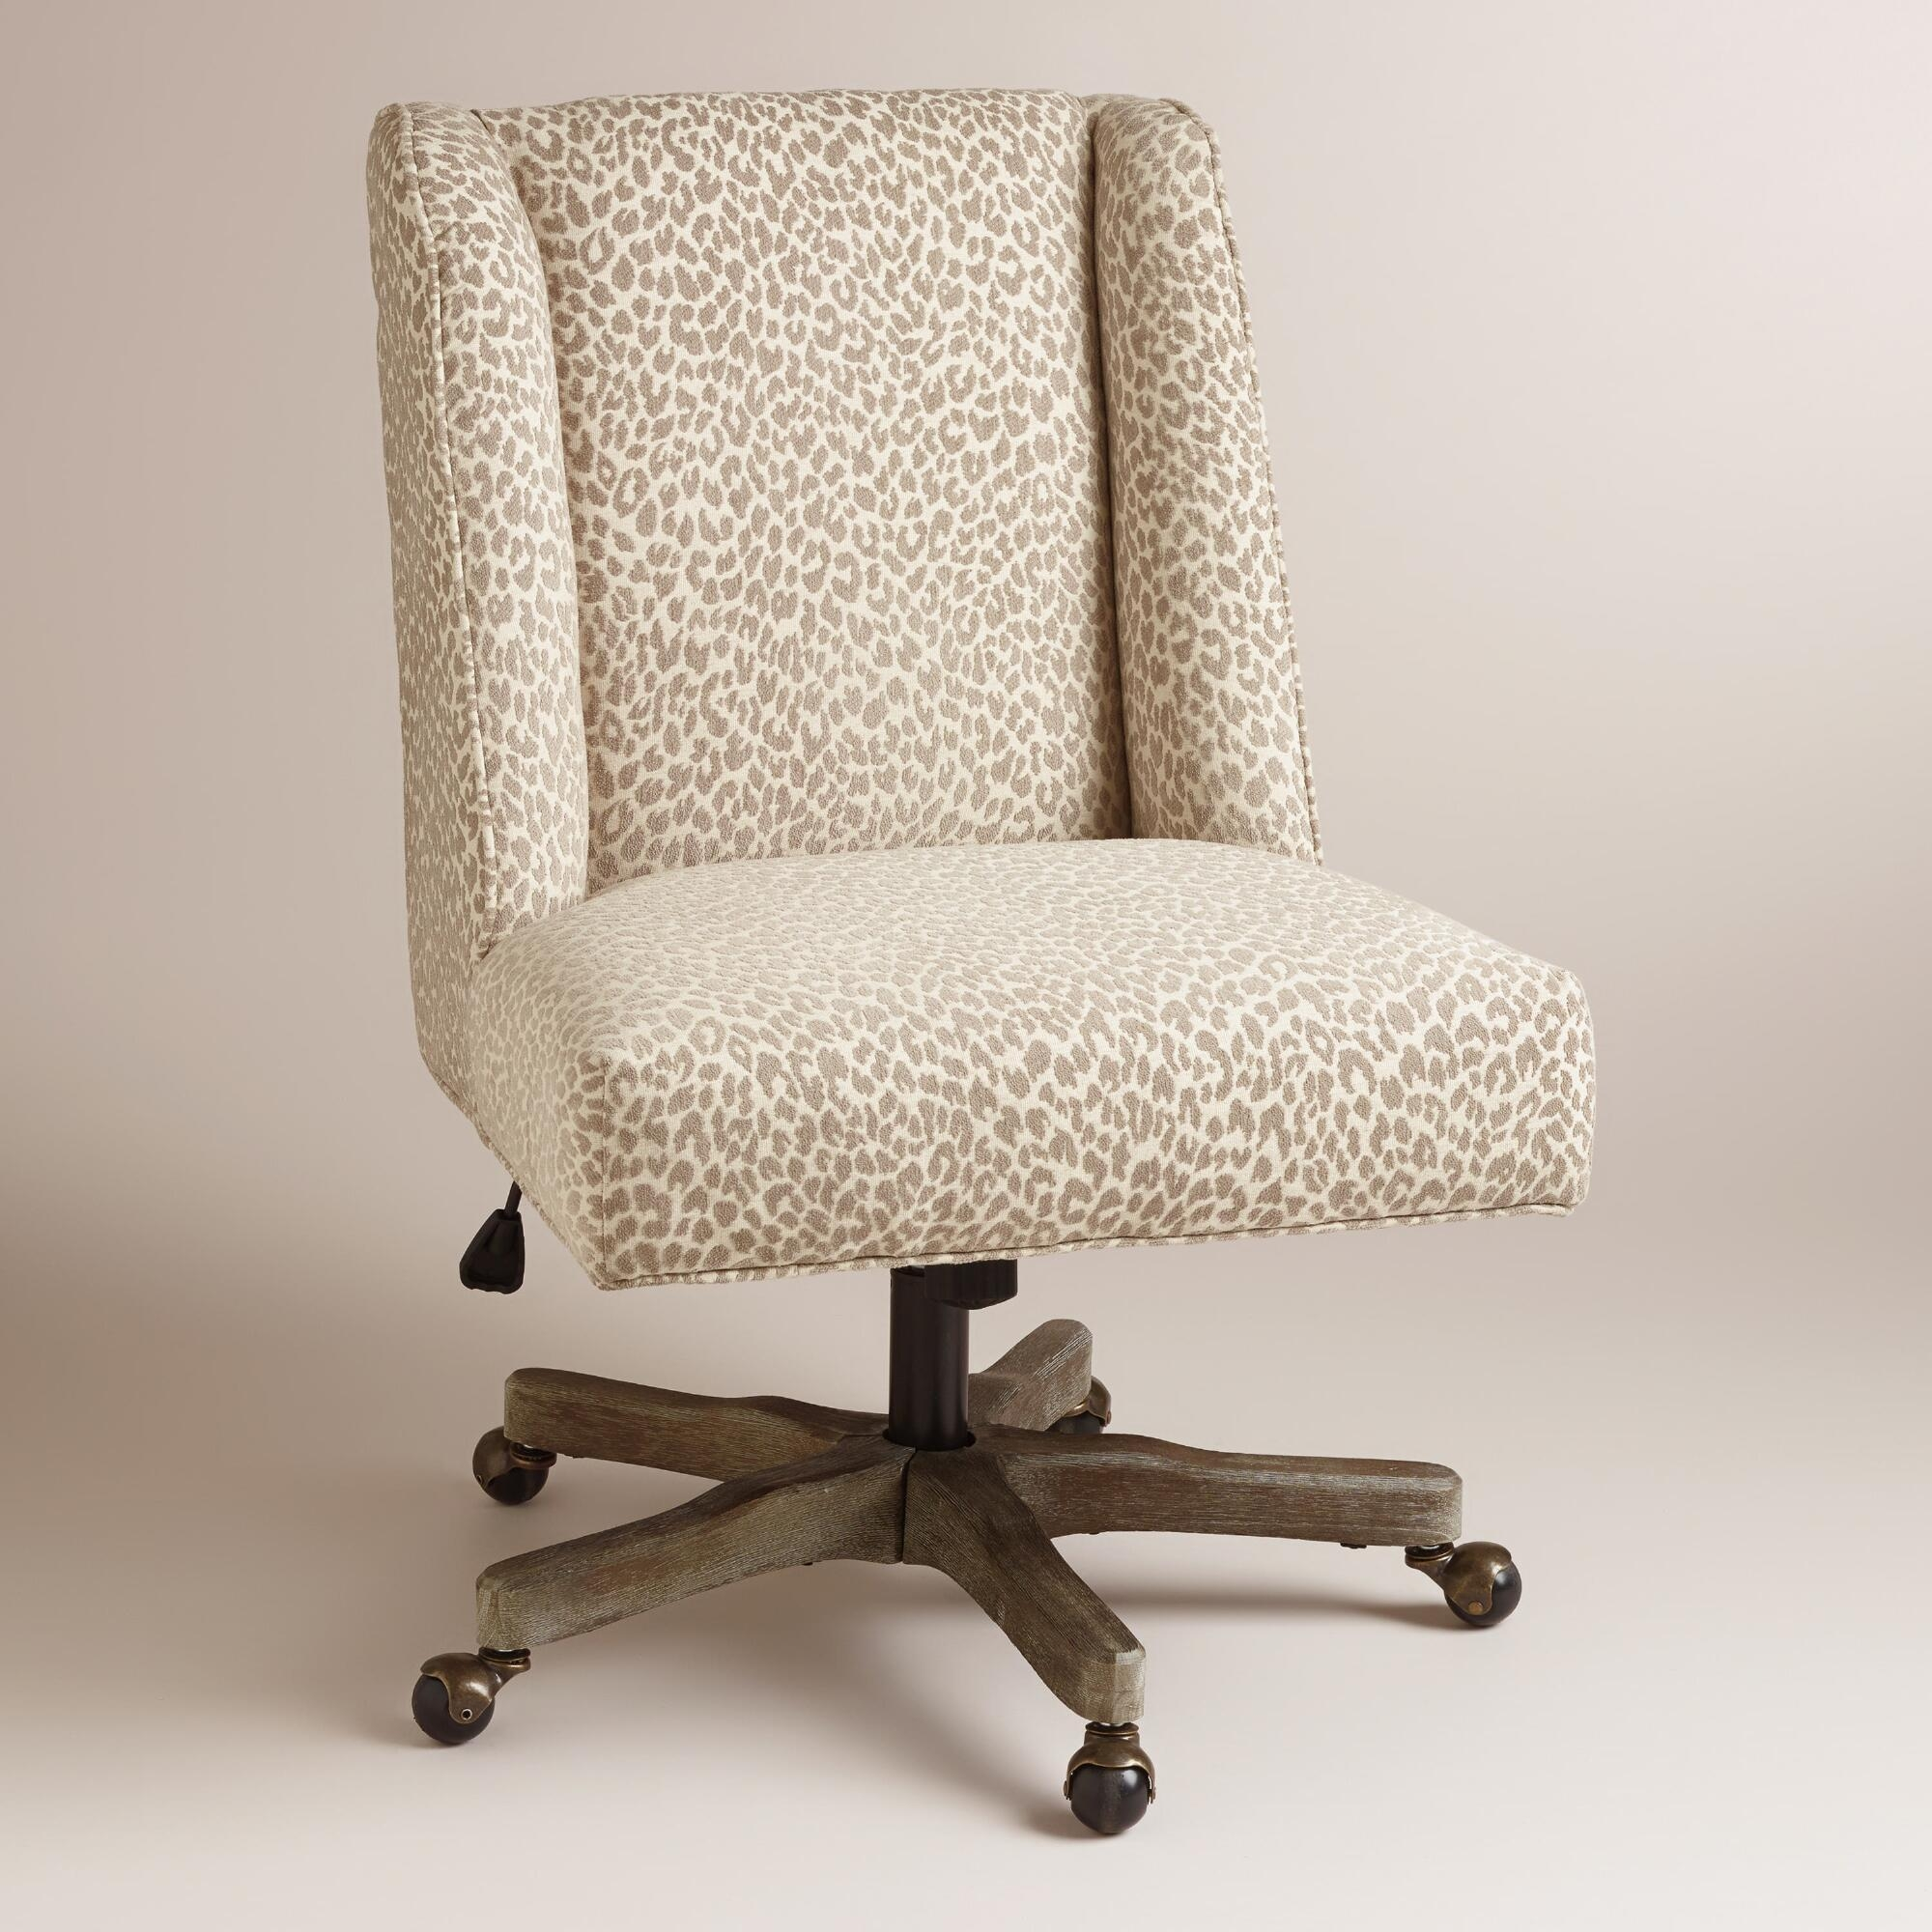 Surprising Upholstered Desk Chair Wyatt O Sofa | Winafrica Regarding Sofa Desk Chairs (Image 19 of 20)